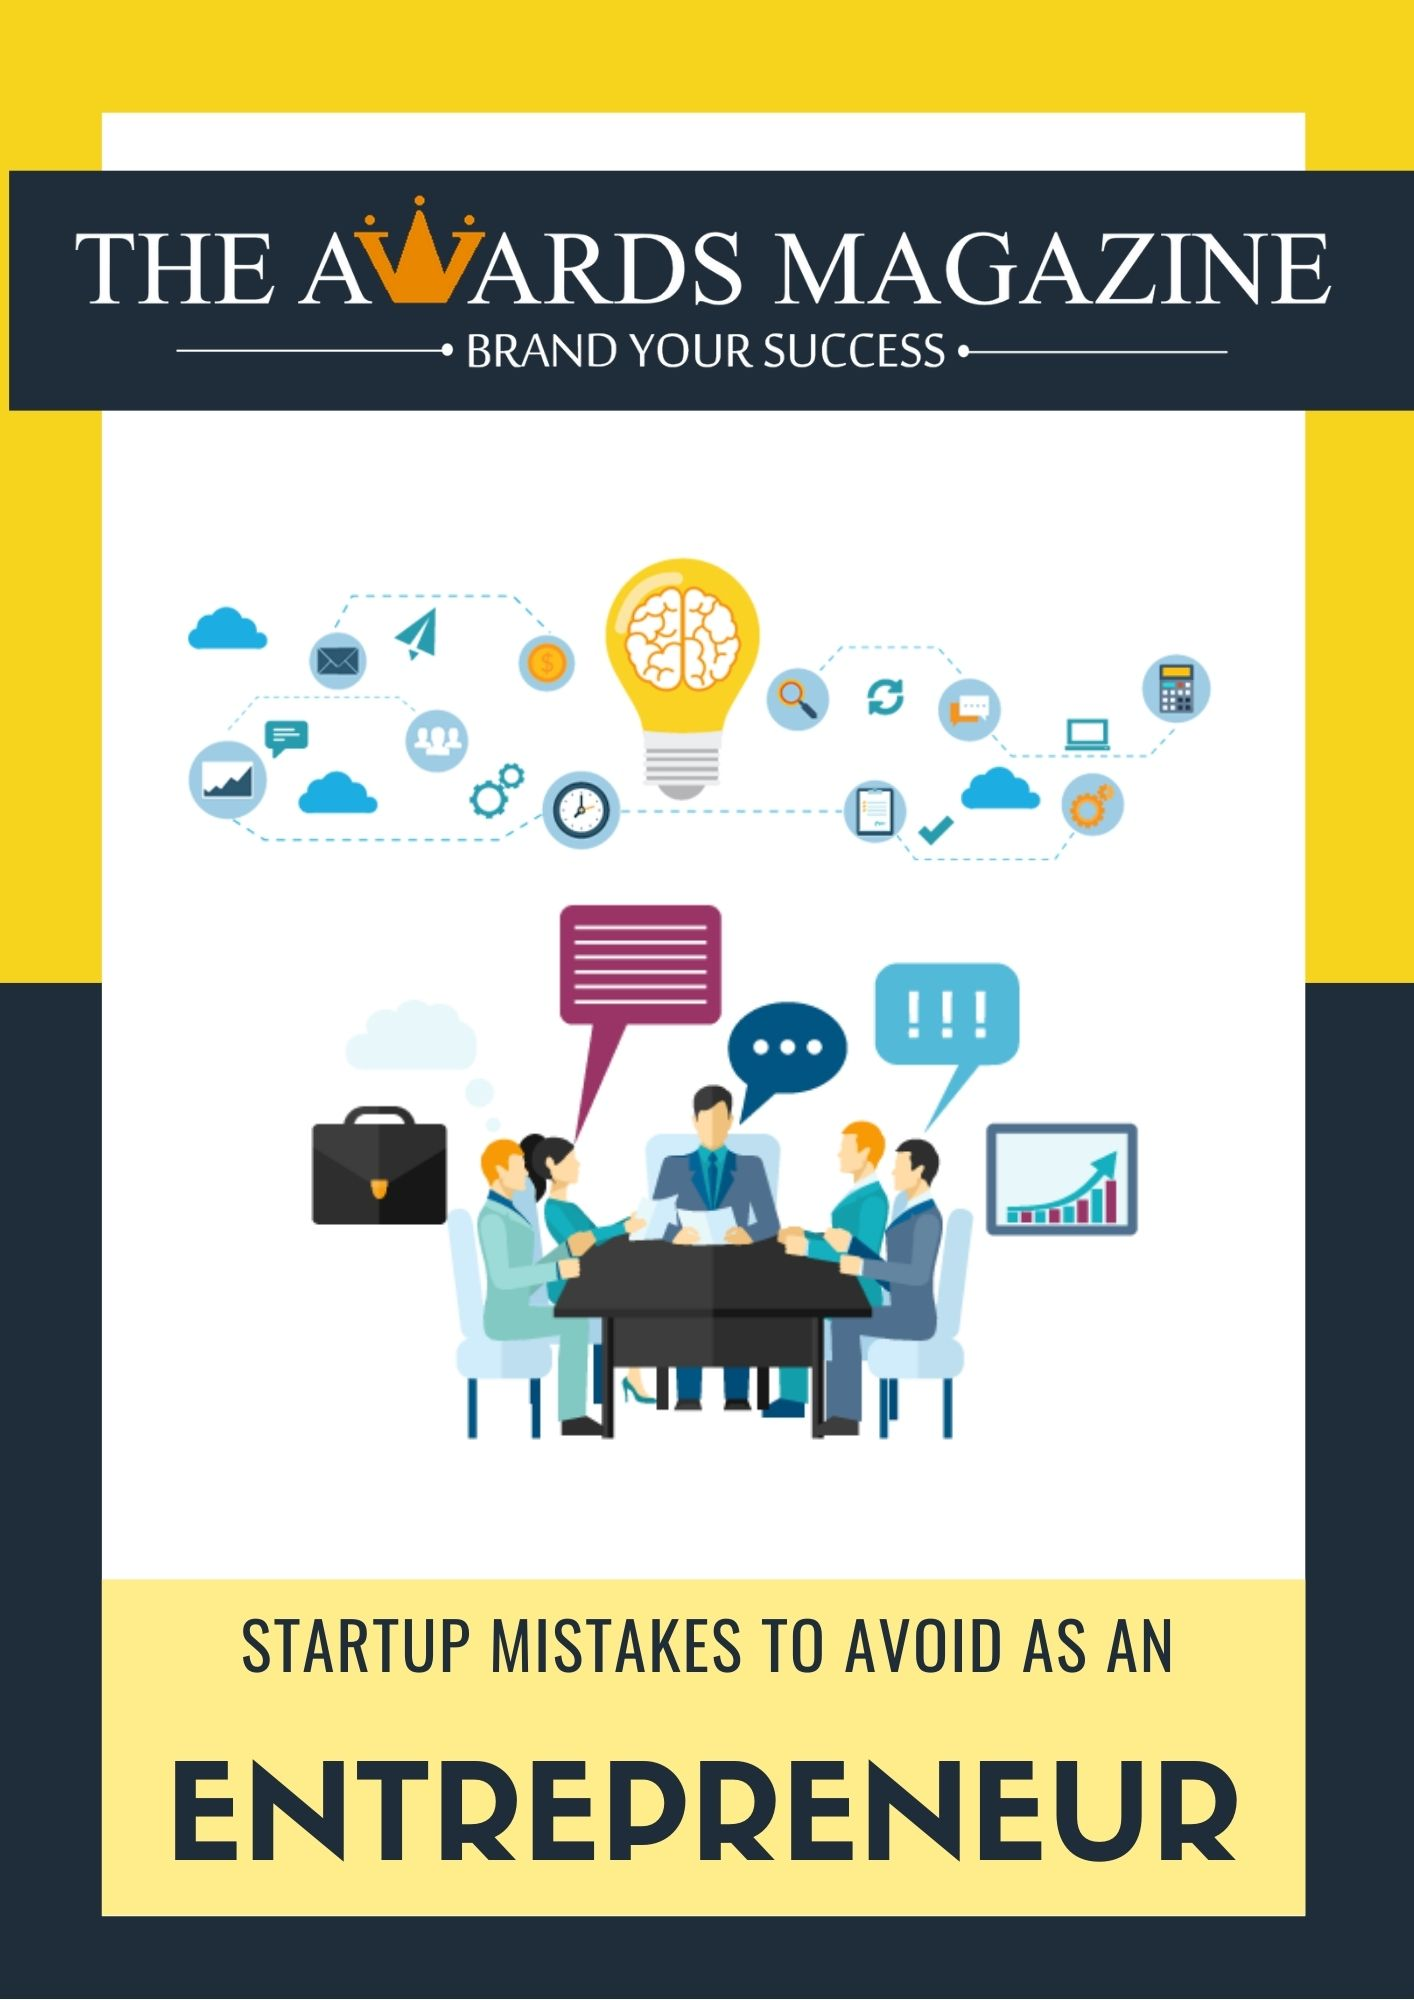 Top Startup Mistakes to Avoid as an Entrepreneur